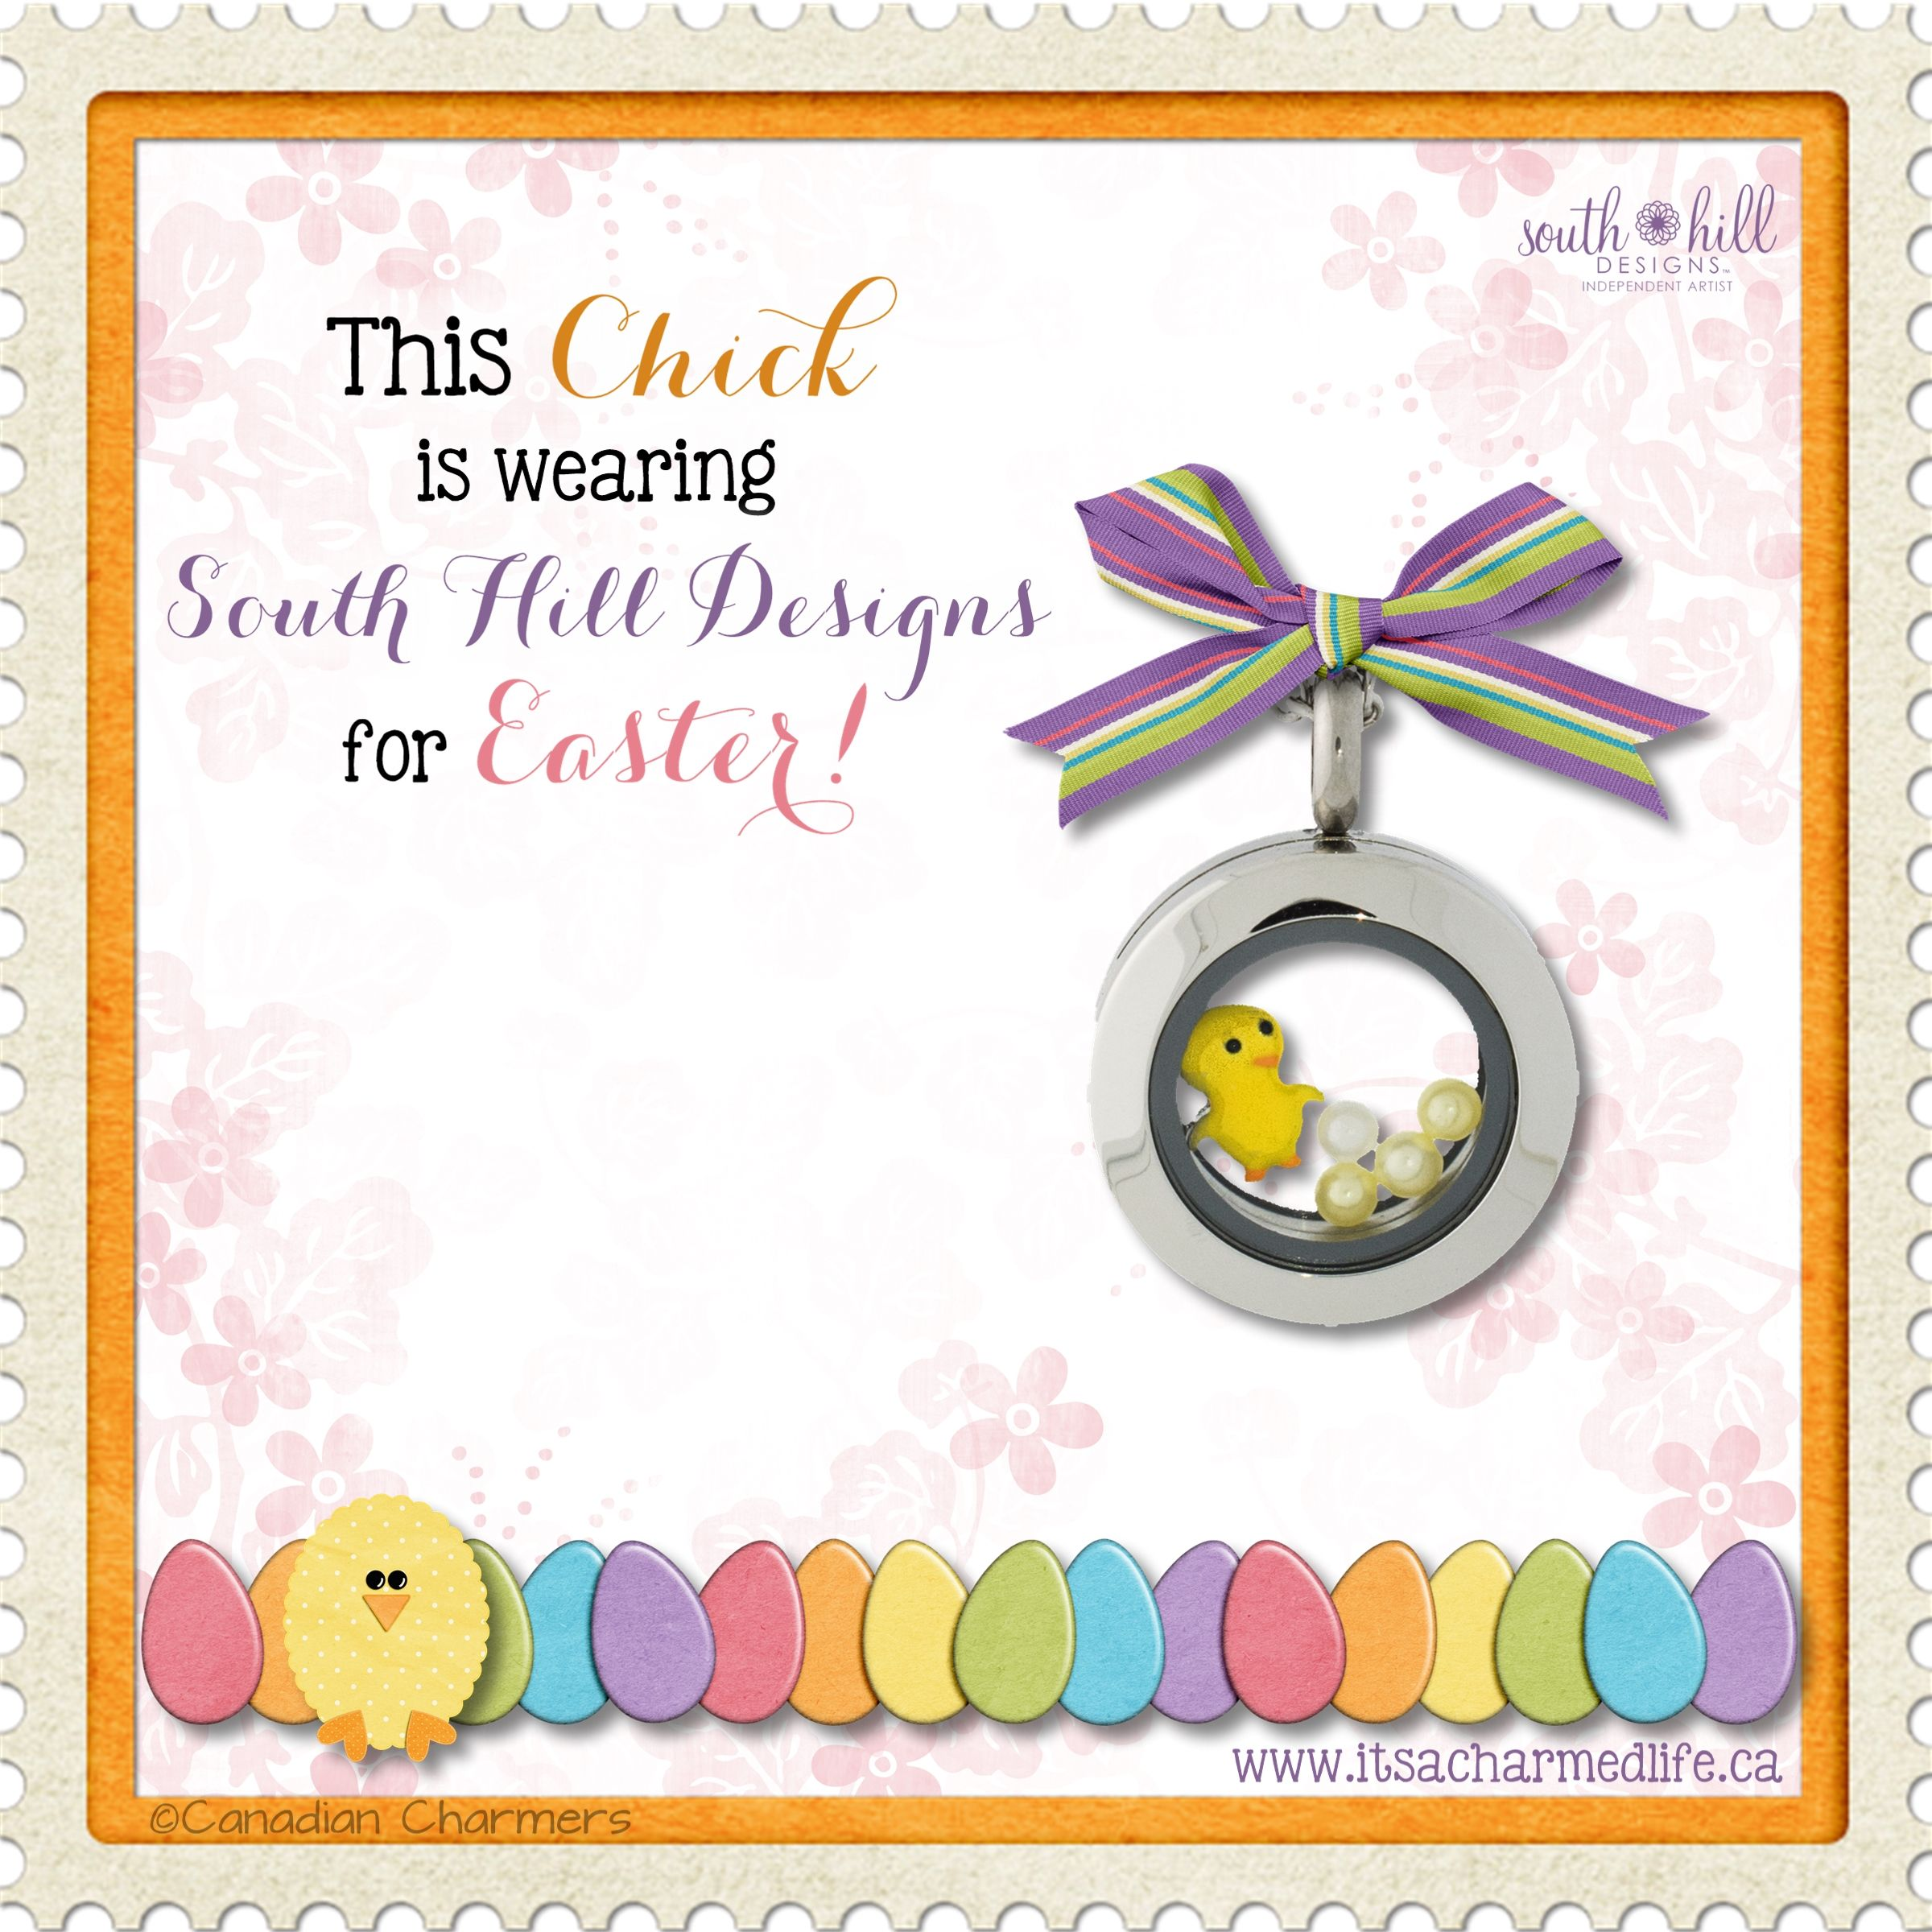 Cute silver mini locket with a baby chick charm! So sweet for Easter! :) #betterthanchocolate #blinginherbasket #shdcharmedlife #easterchick